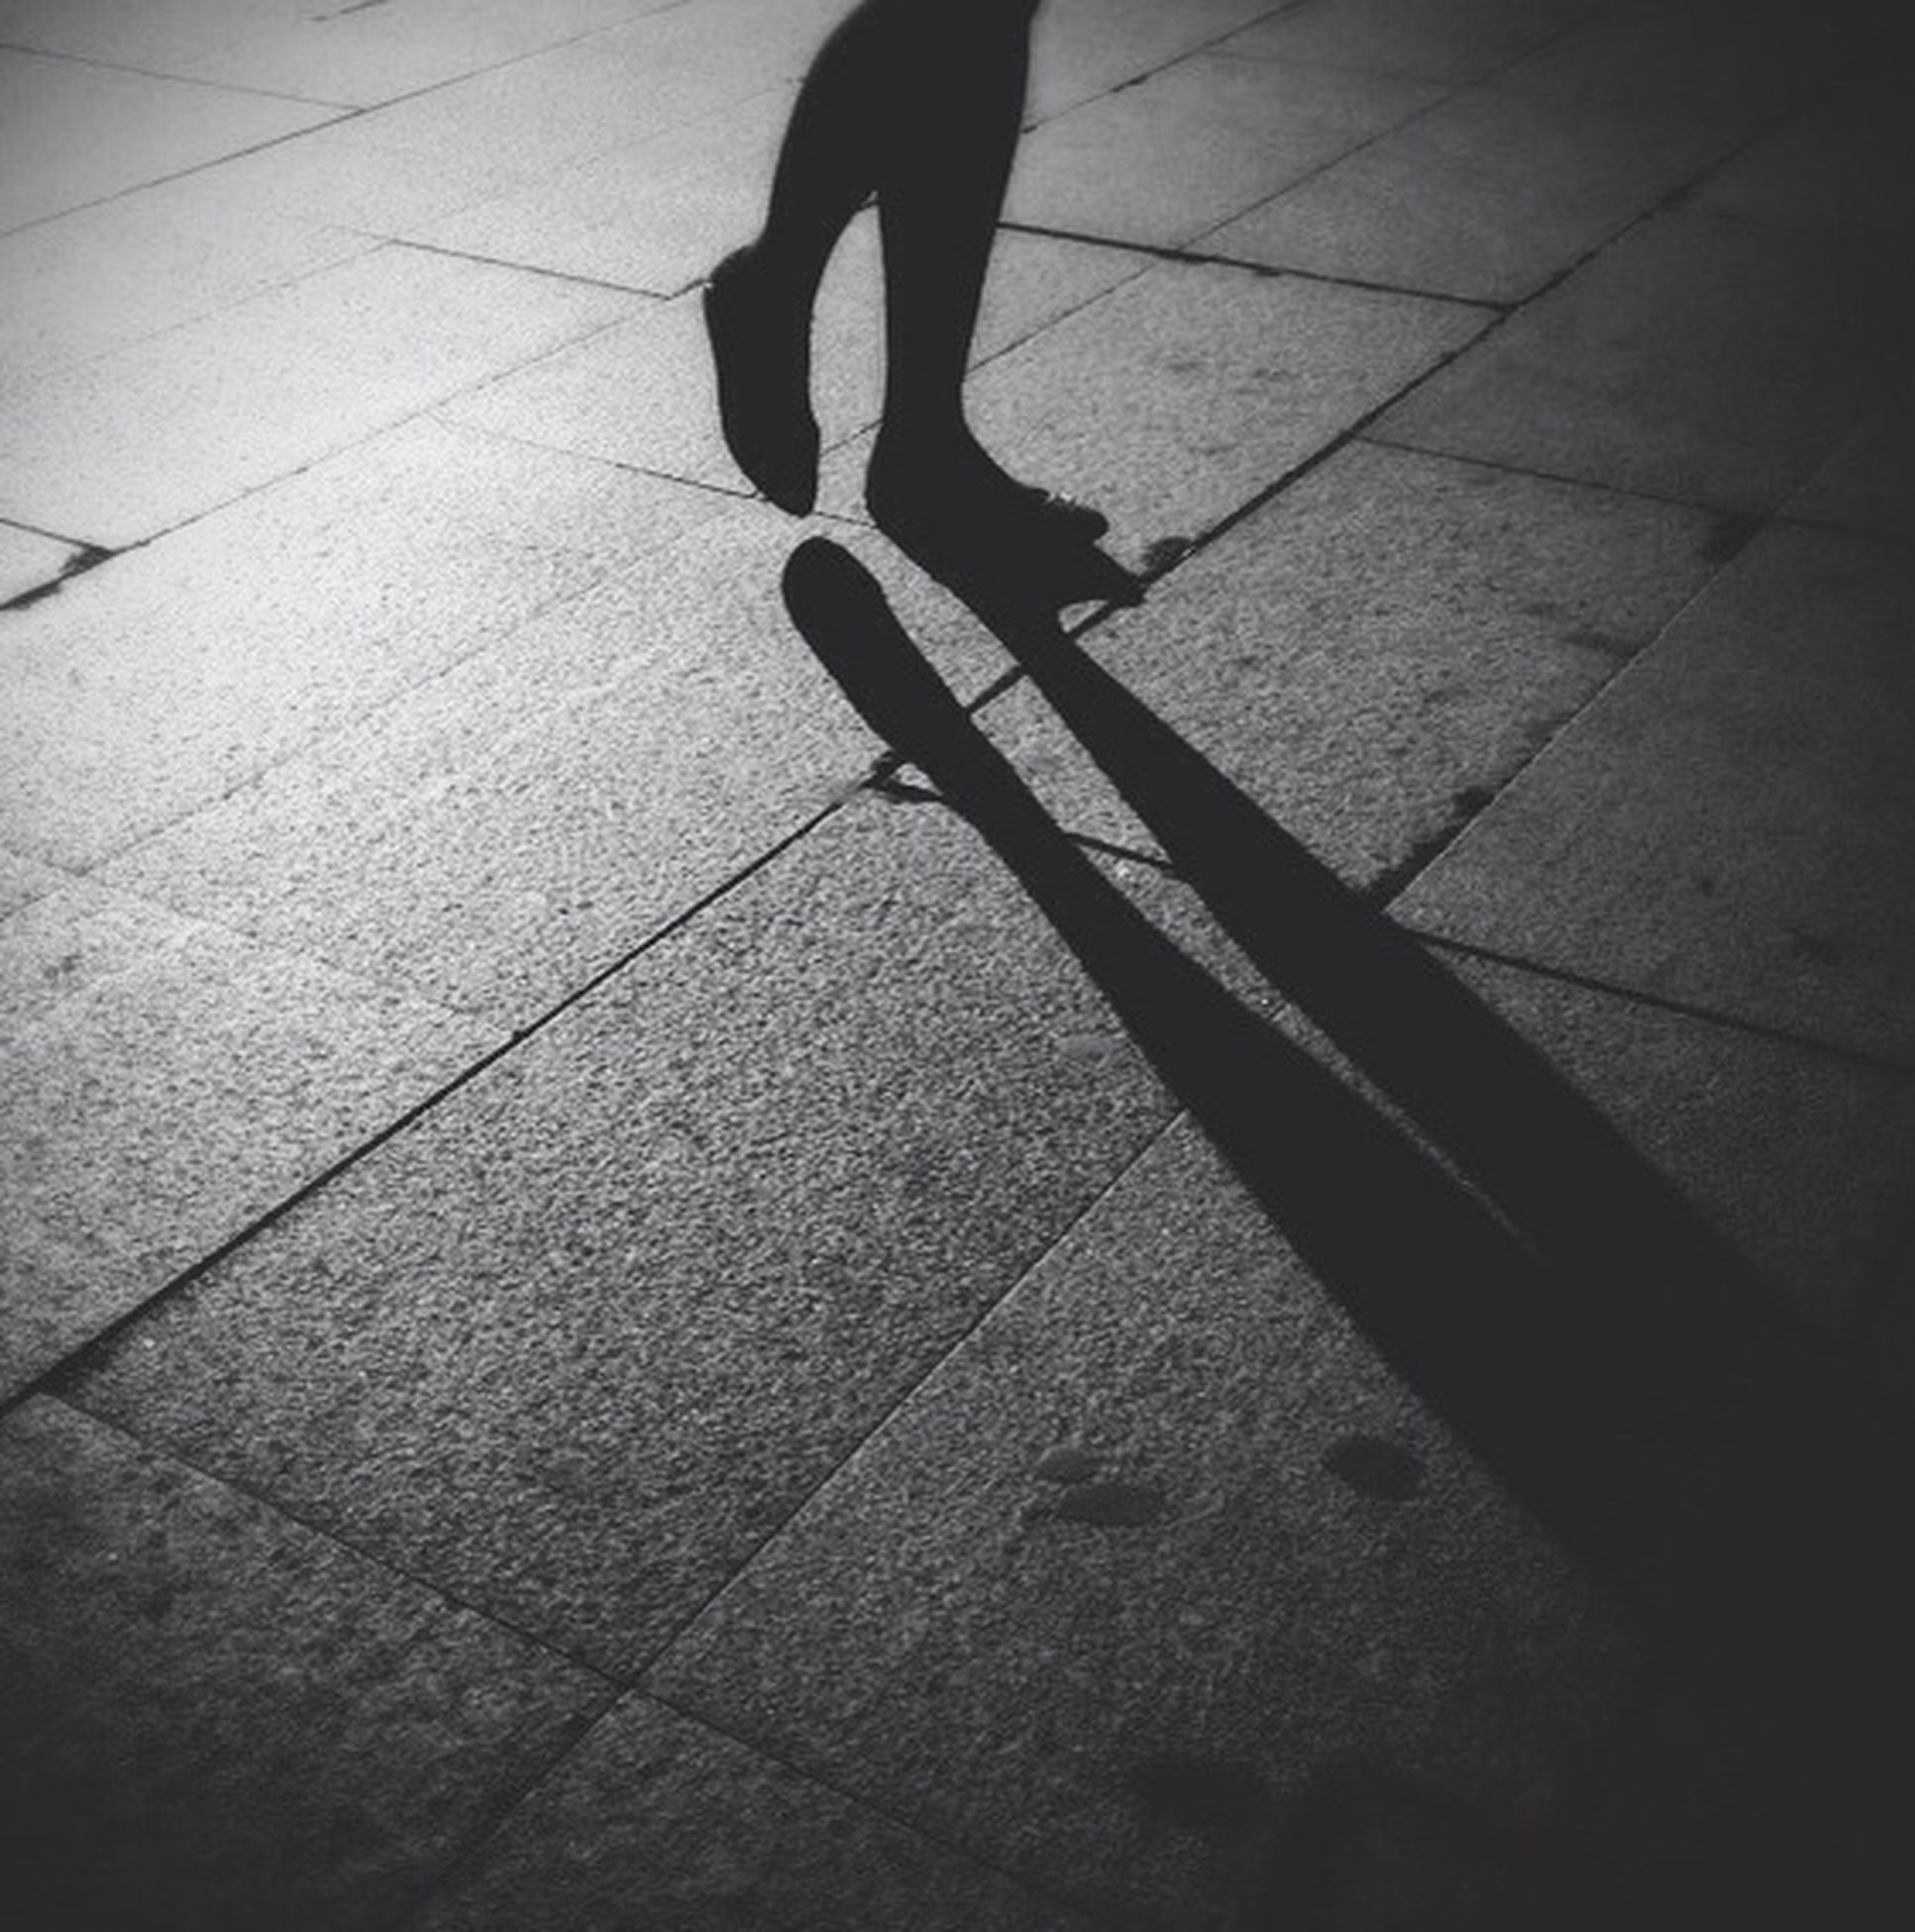 shadow, high angle view, walking, men, low section, street, lifestyles, sunlight, tiled floor, person, unrecognizable person, silhouette, sidewalk, pavement, outdoors, full length, paving stone, day